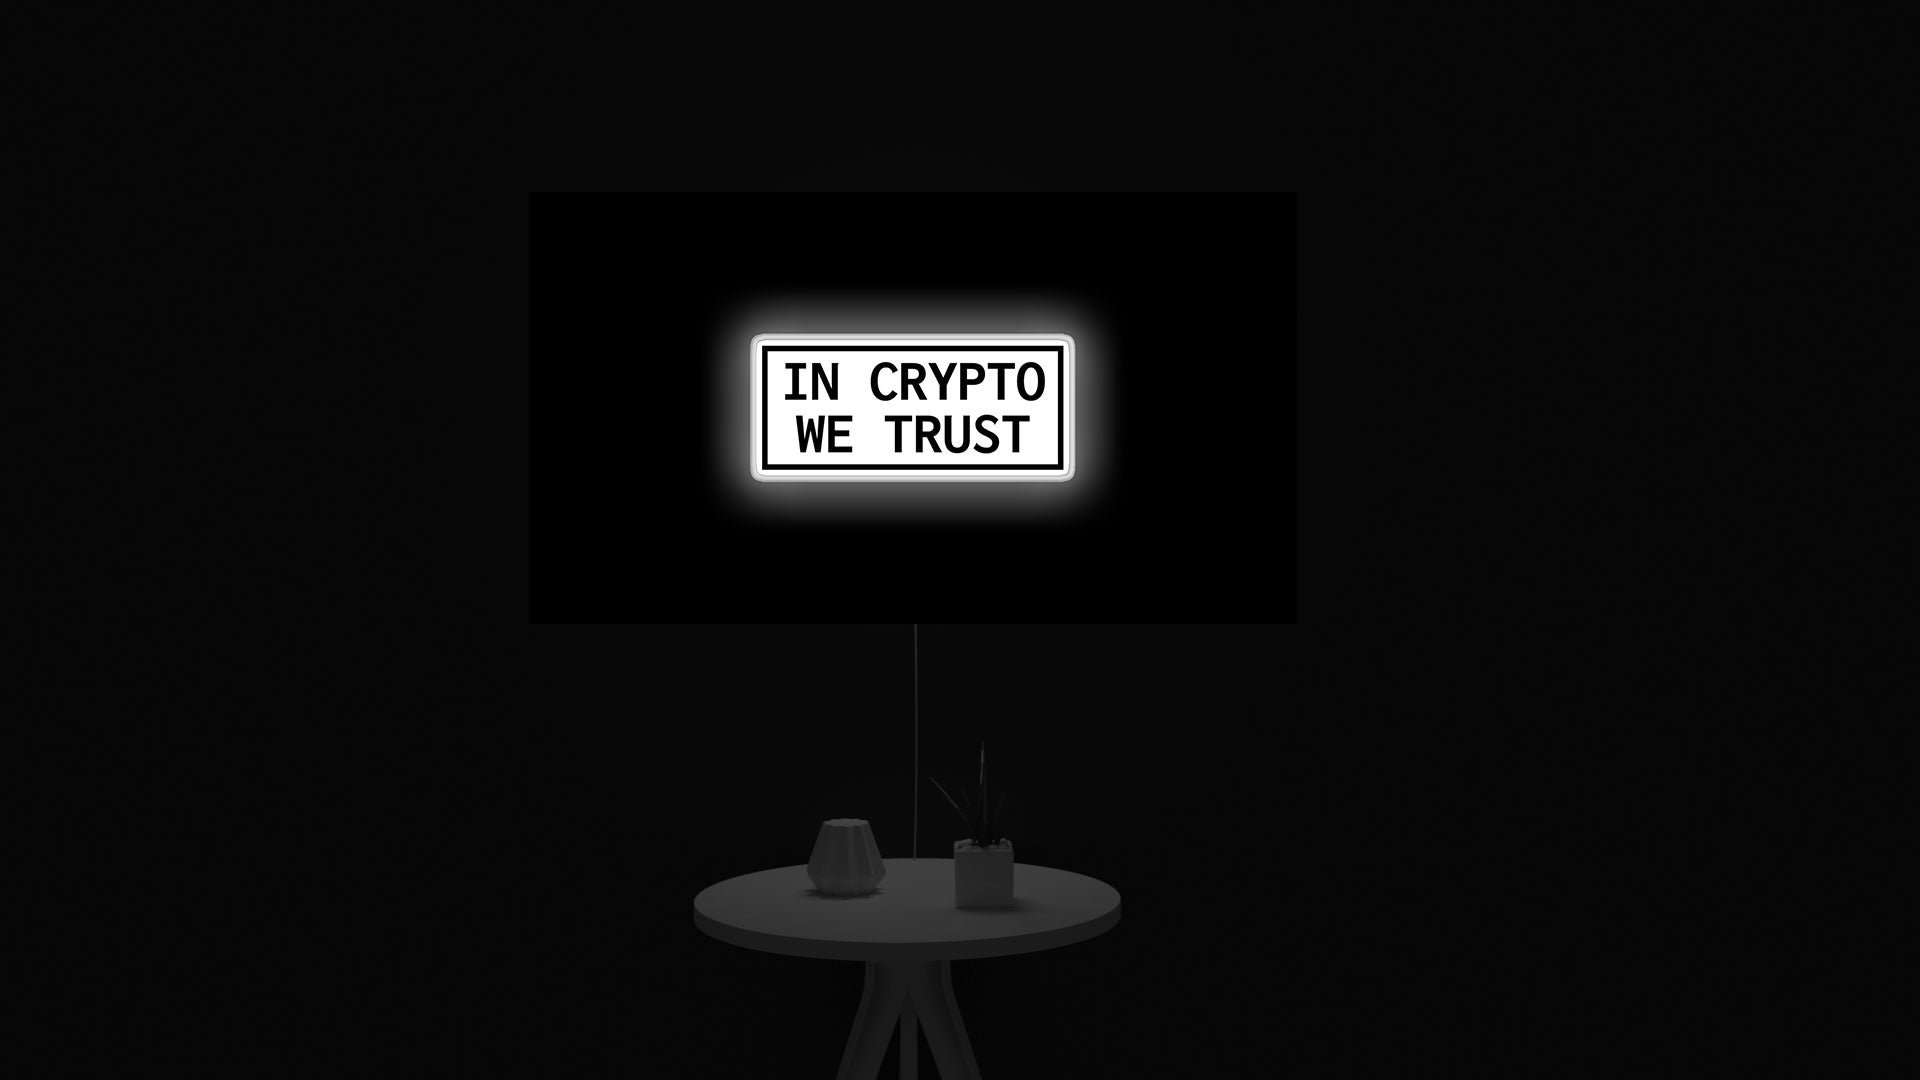 In Crypto We Trust led light sign